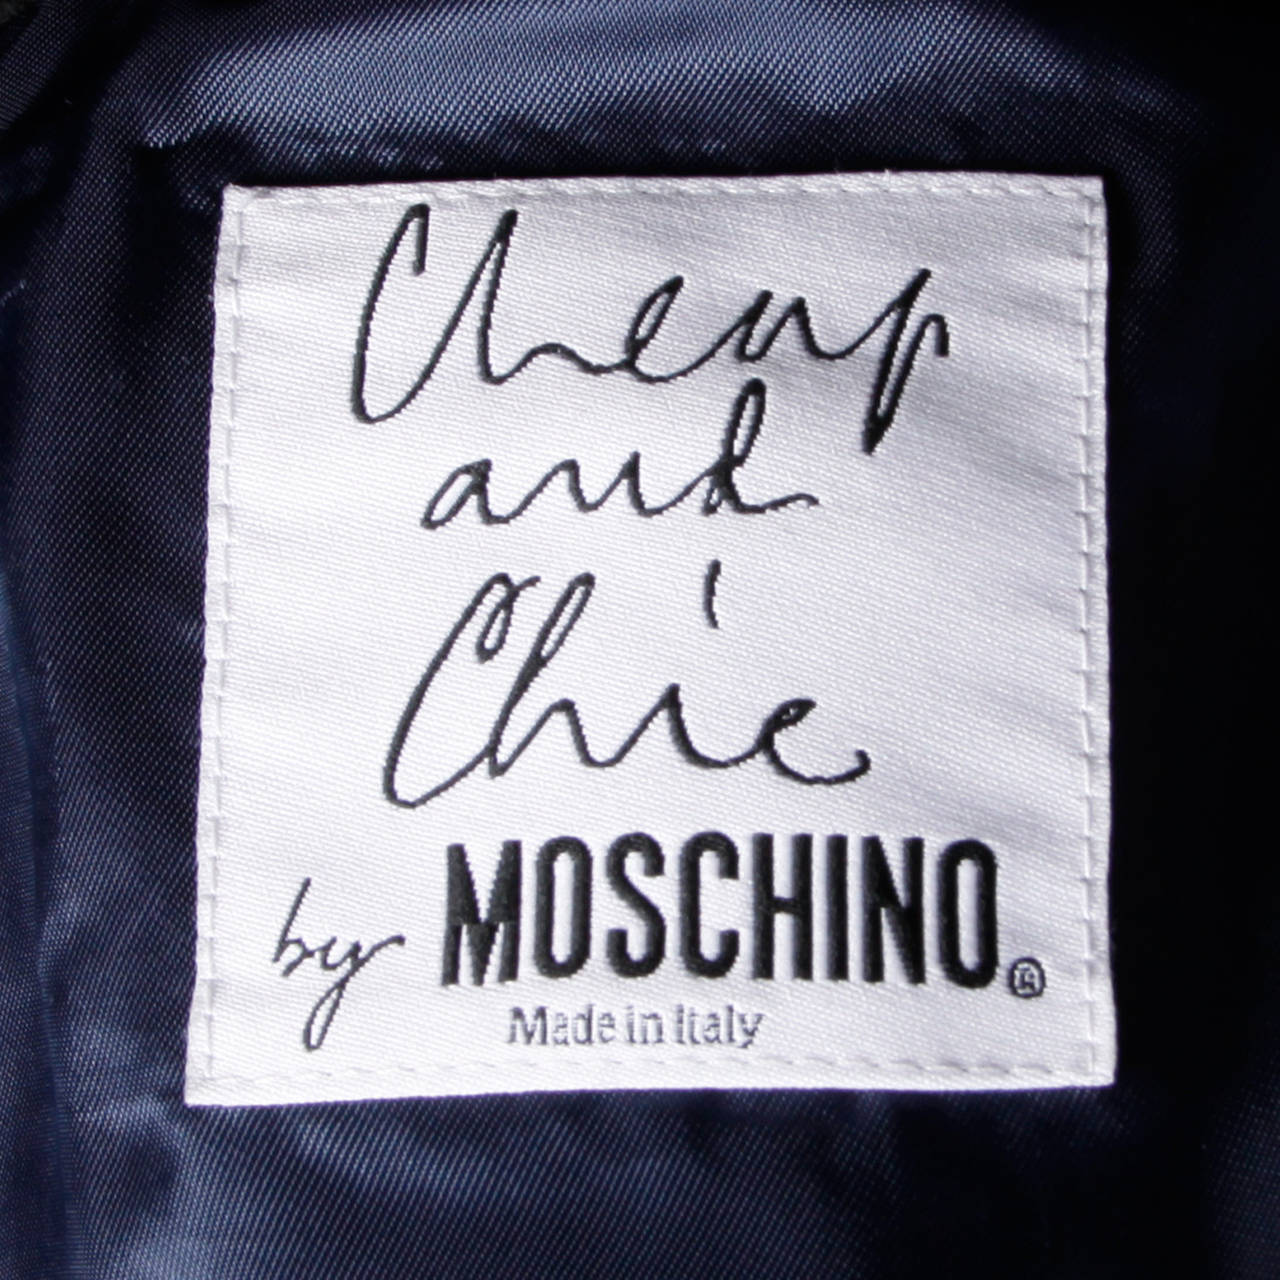 Moschino Vintage 90s Polka Dot Patchwork Skirt + Jacket Suit Ensemble For Sale 3